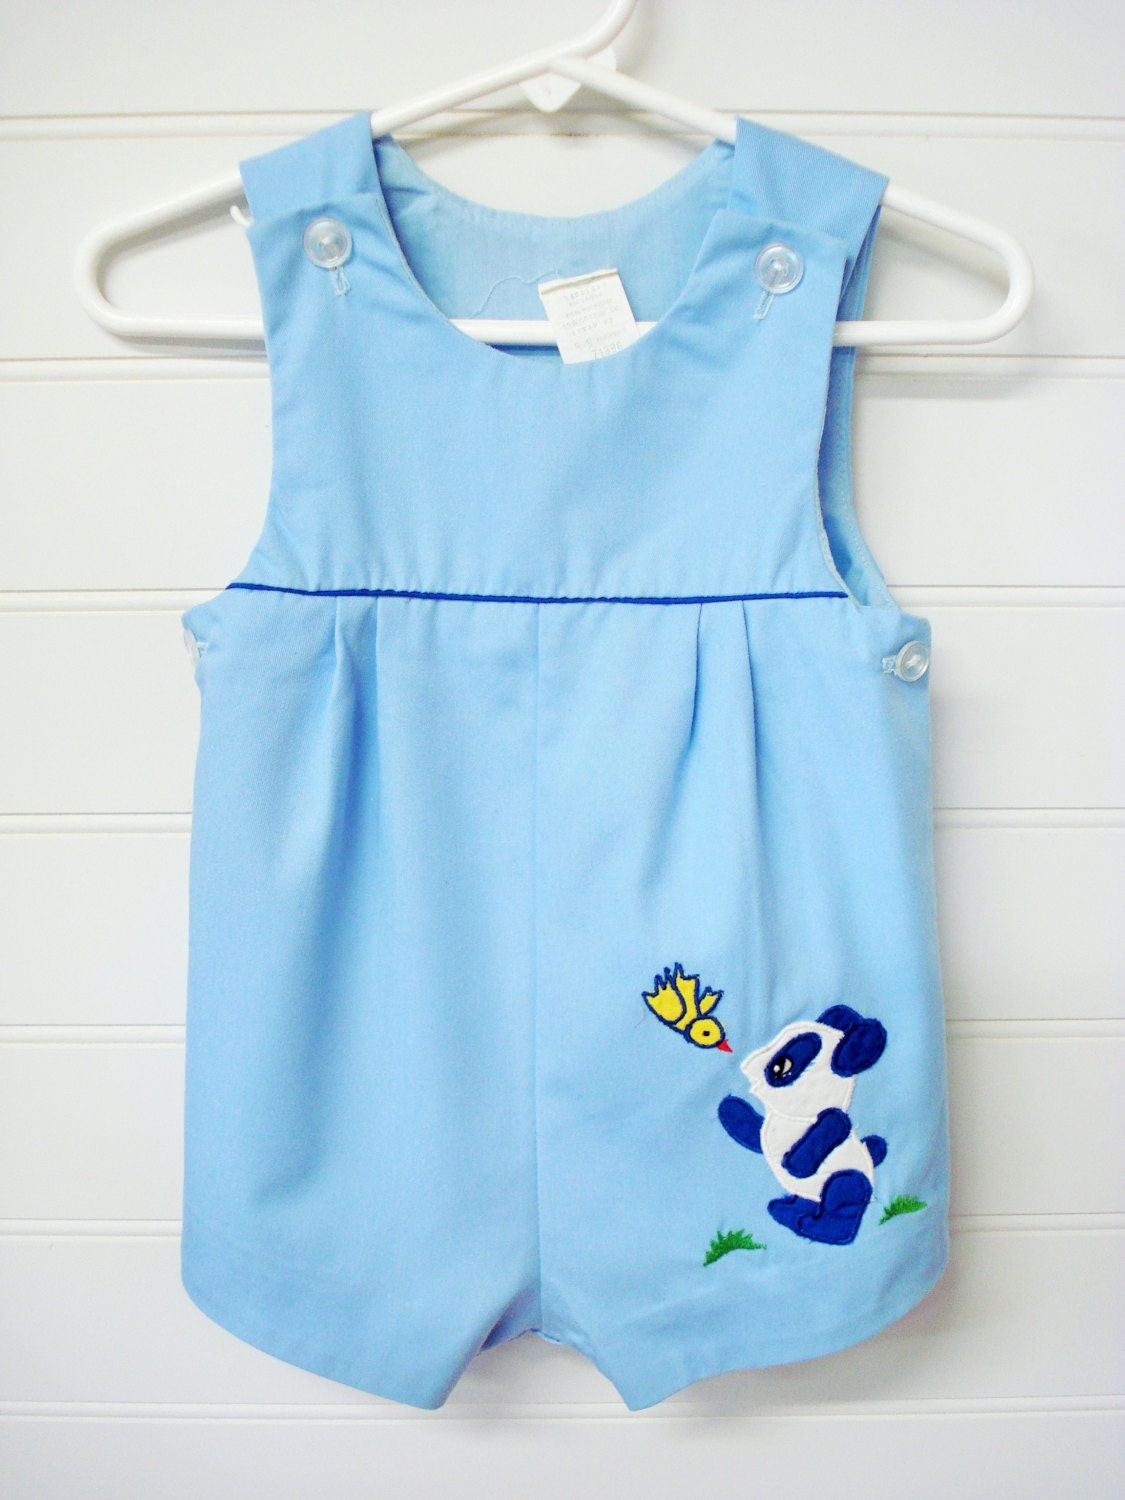 vintage baby clothes baby boy romper light blue jon jon style